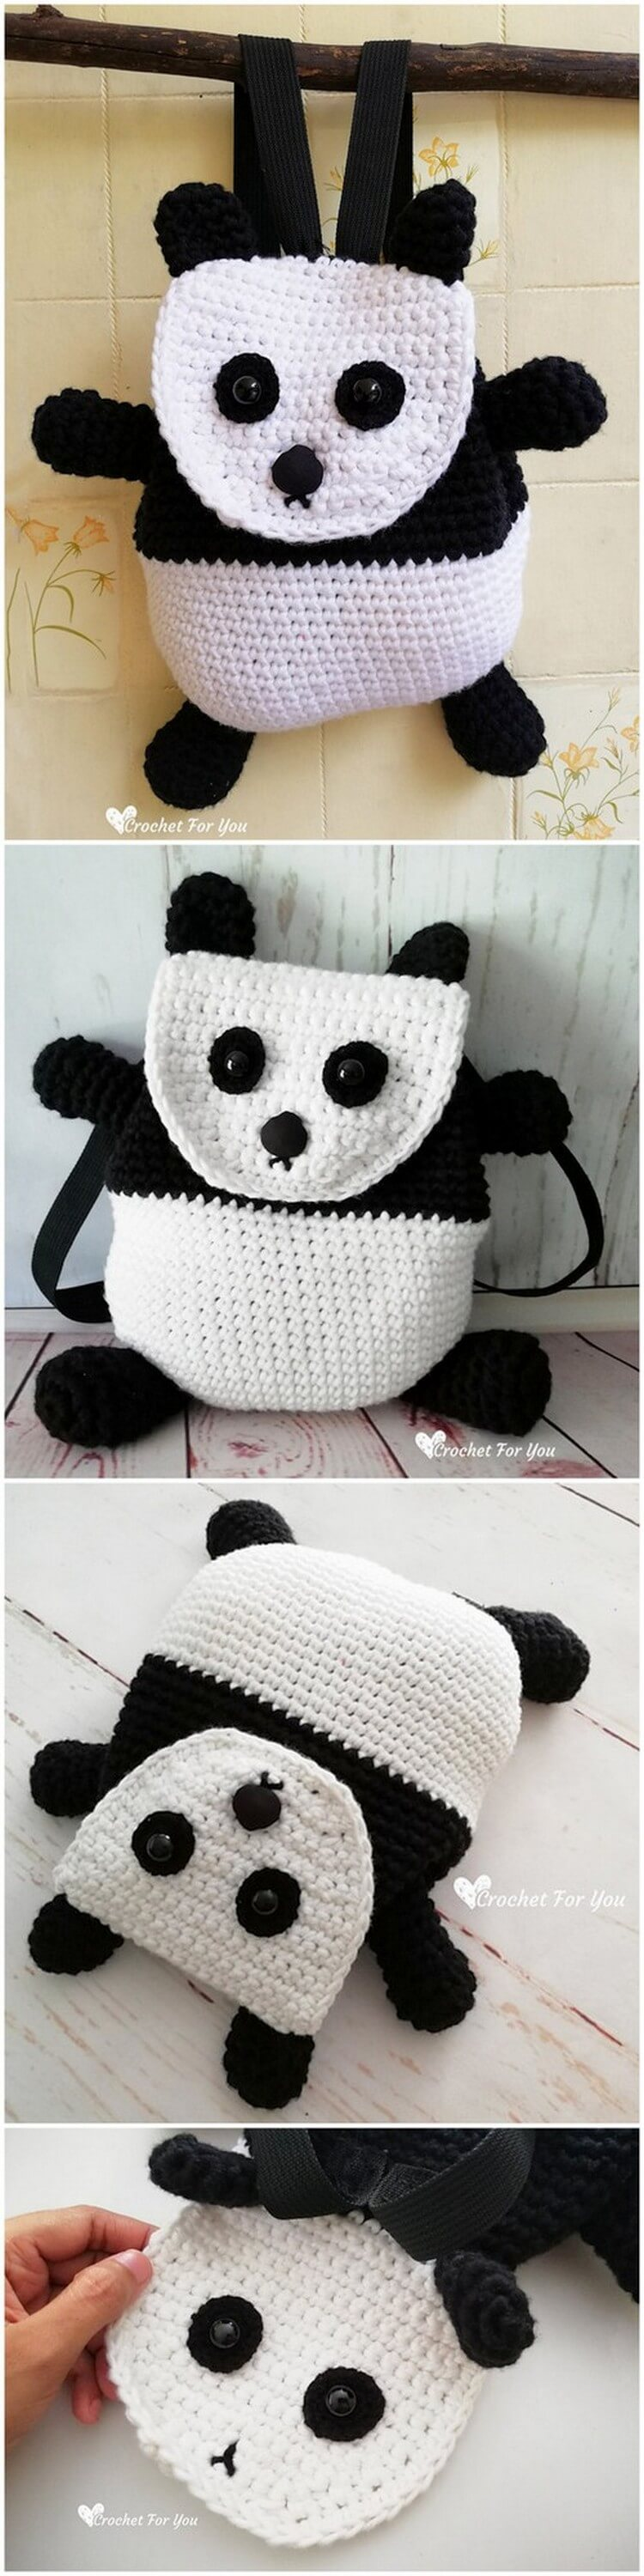 Crochet Backpack Pattern (56)